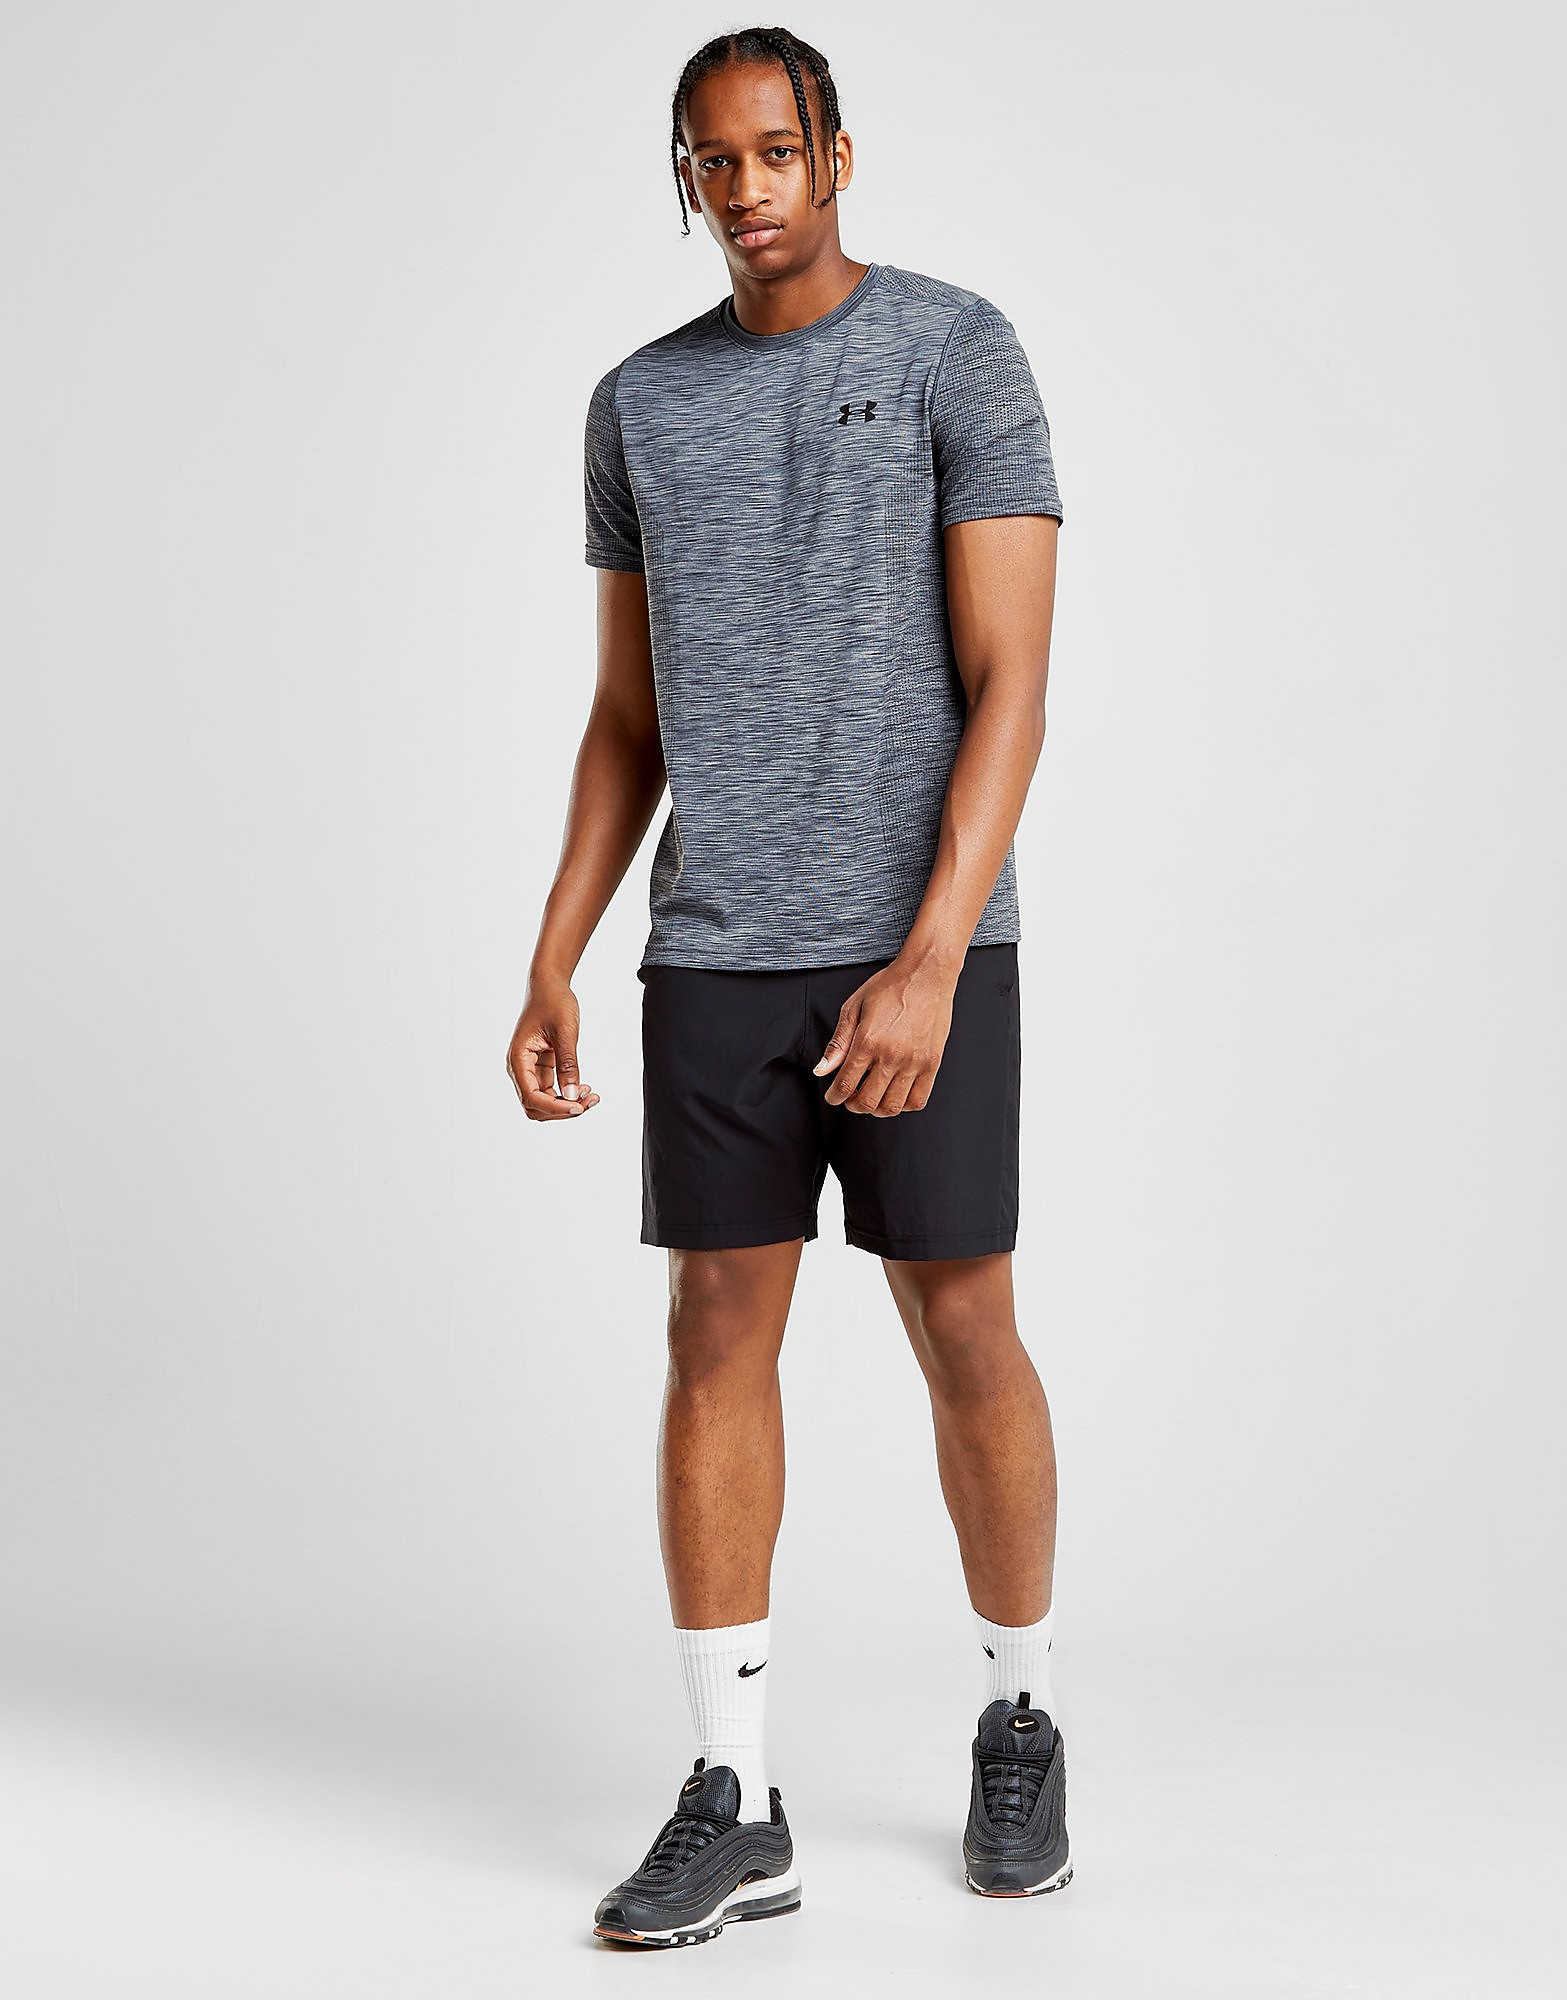 Under Armour Threadborne T-Shirt